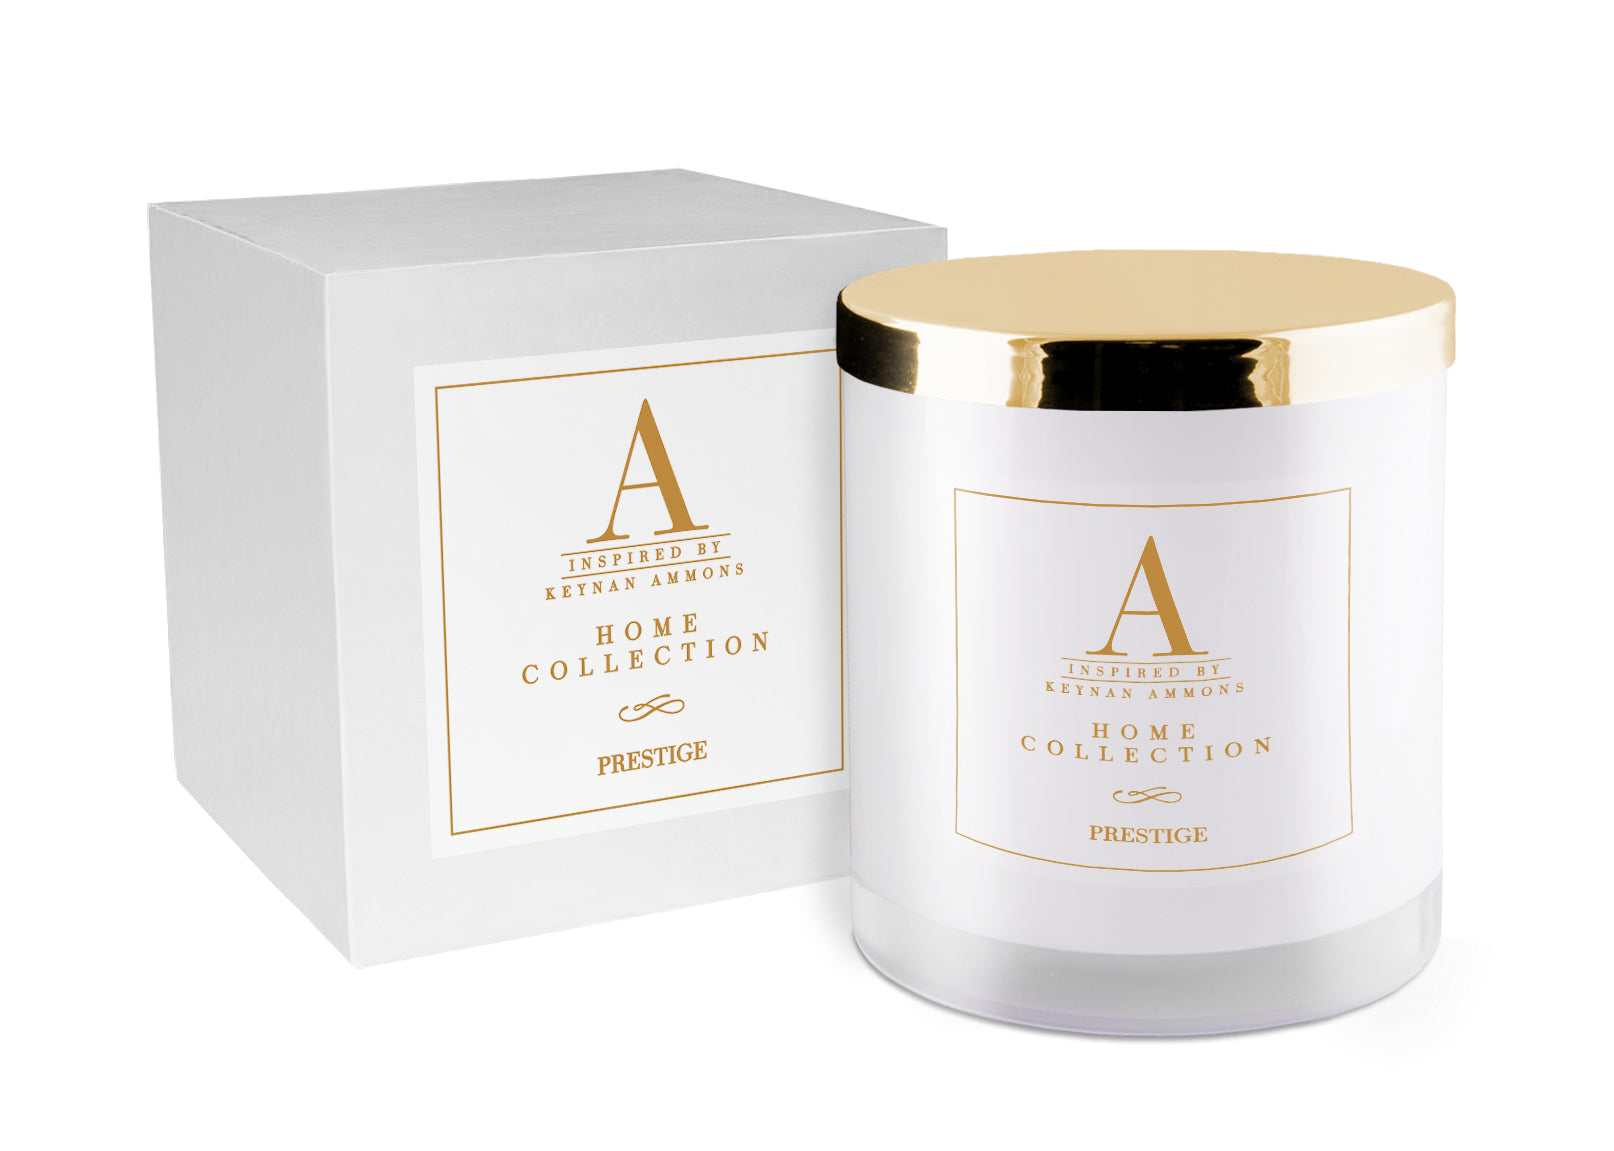 PRESTIGE - Ammons Home Candle Collection